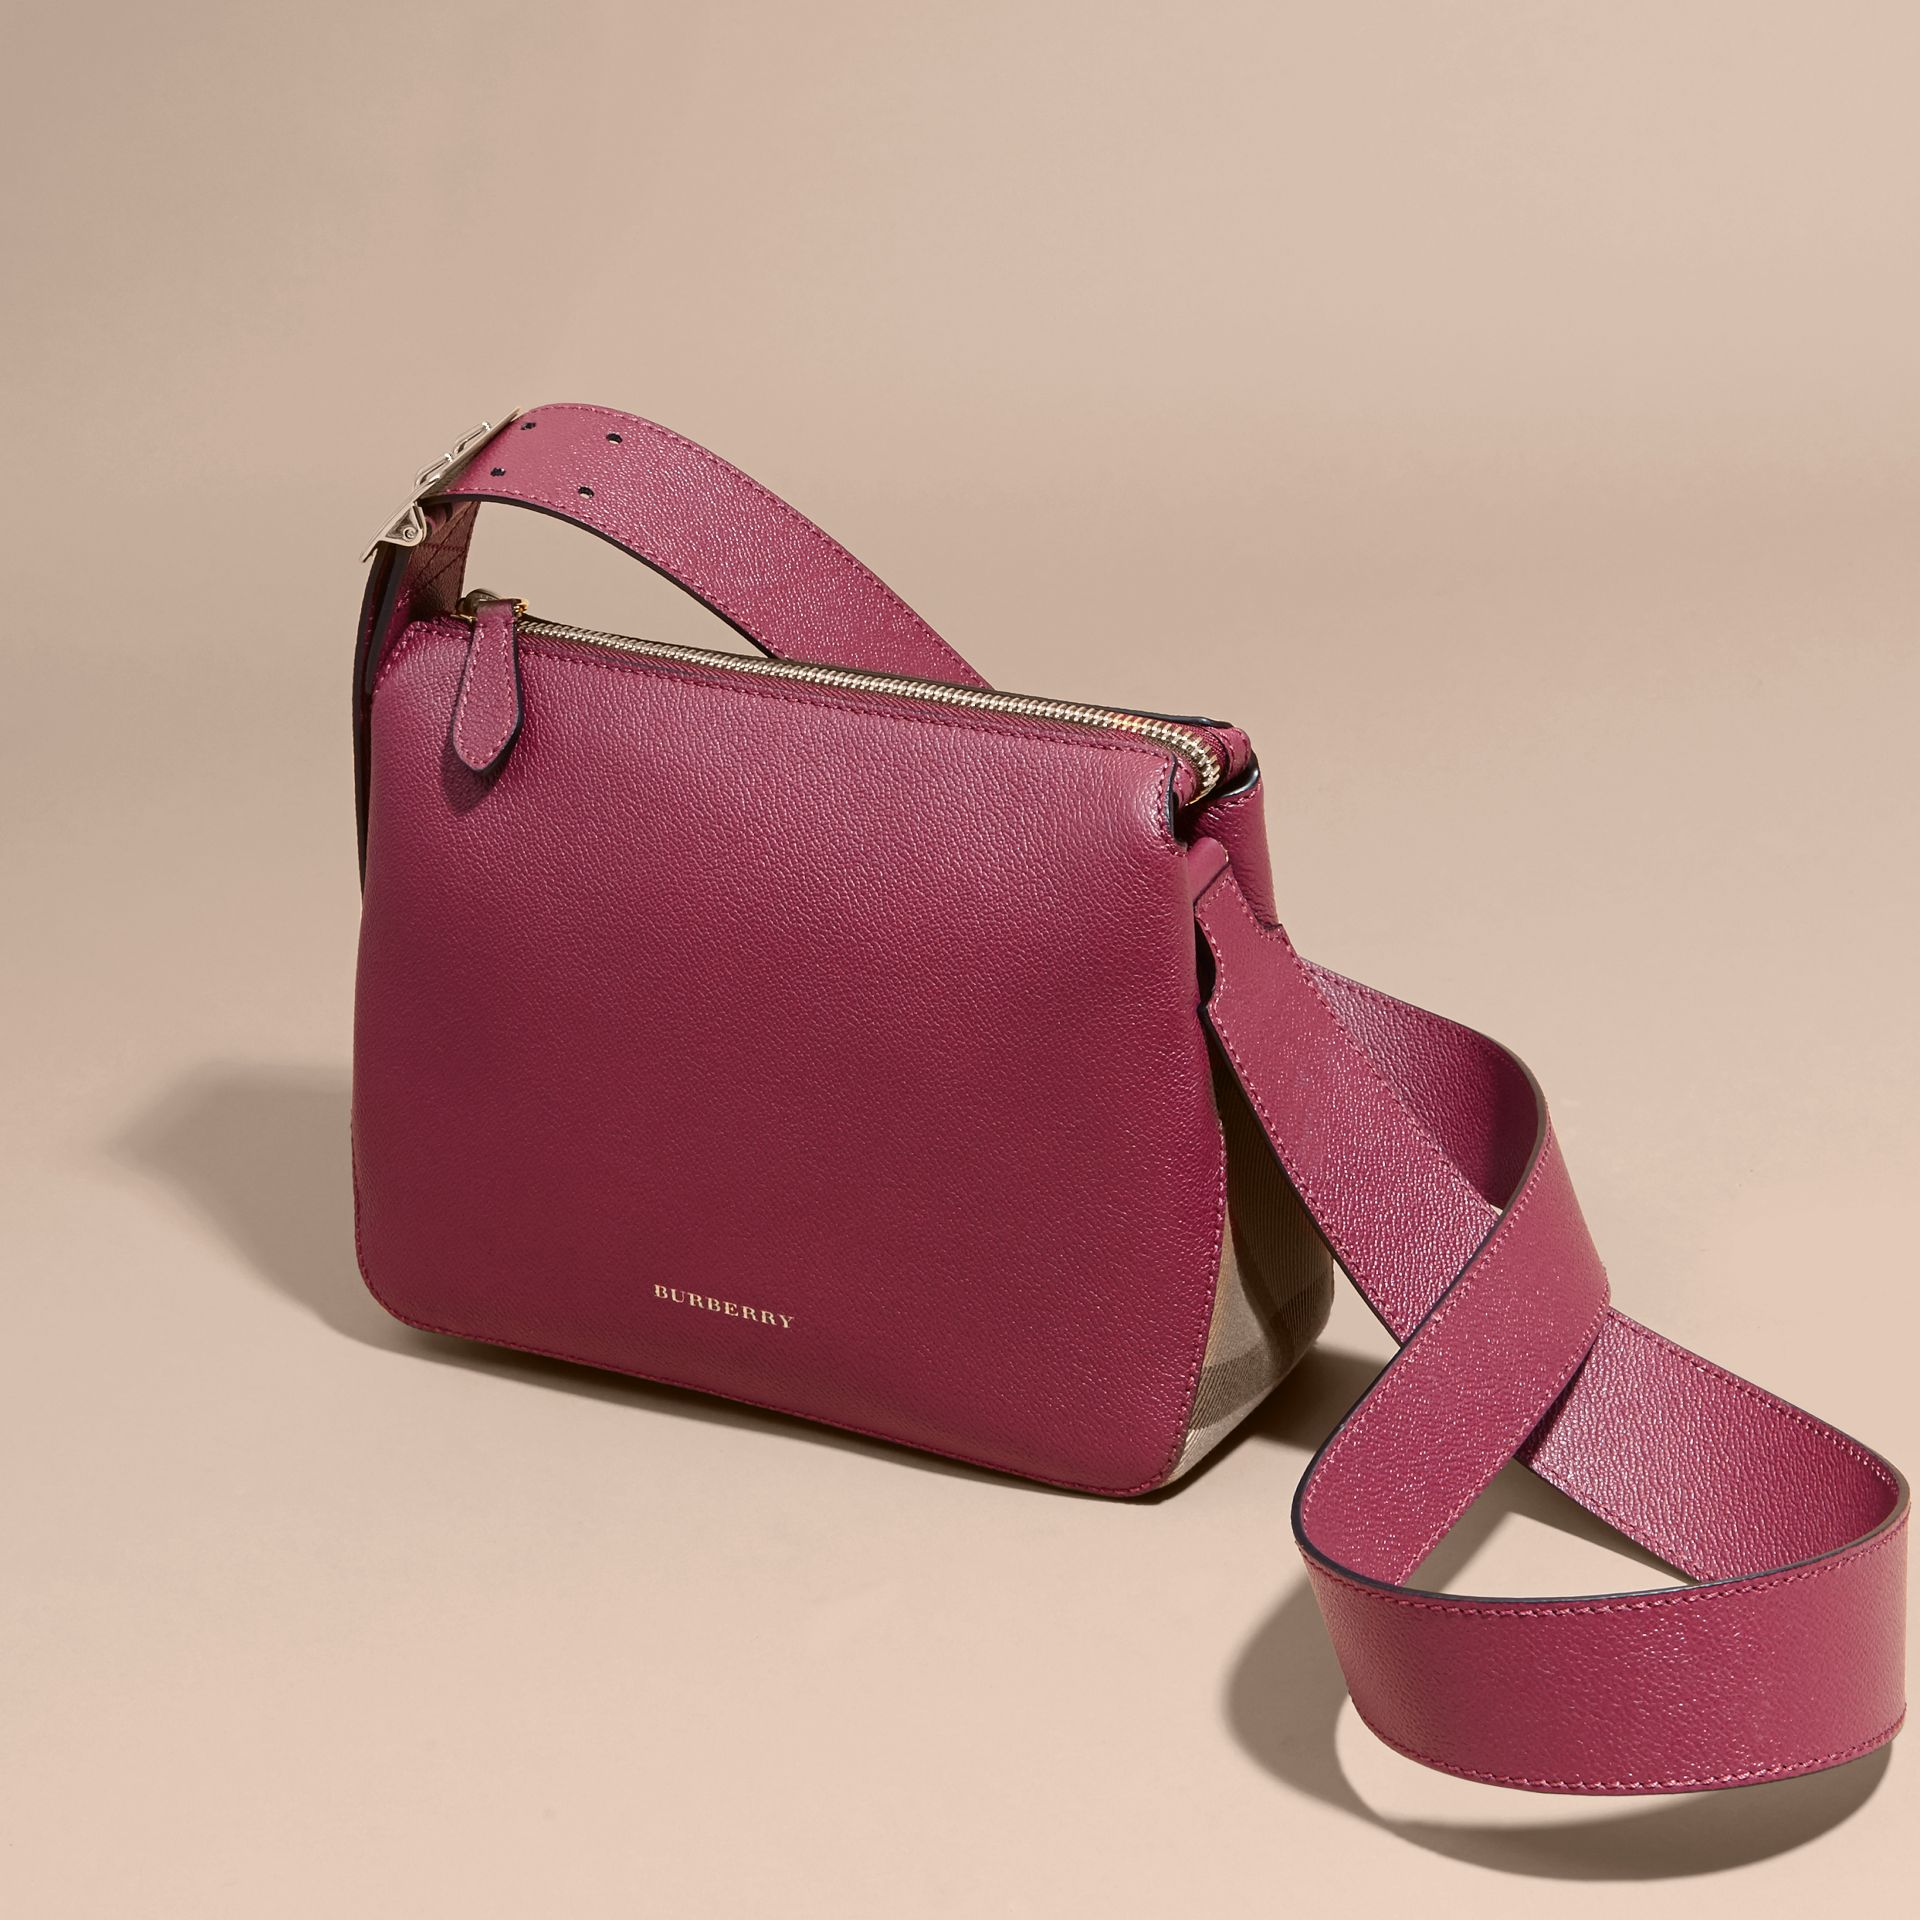 Buckle Detail Leather and House Check Crossbody Bag in Dark Plum - Women | Burberry - gallery image 7